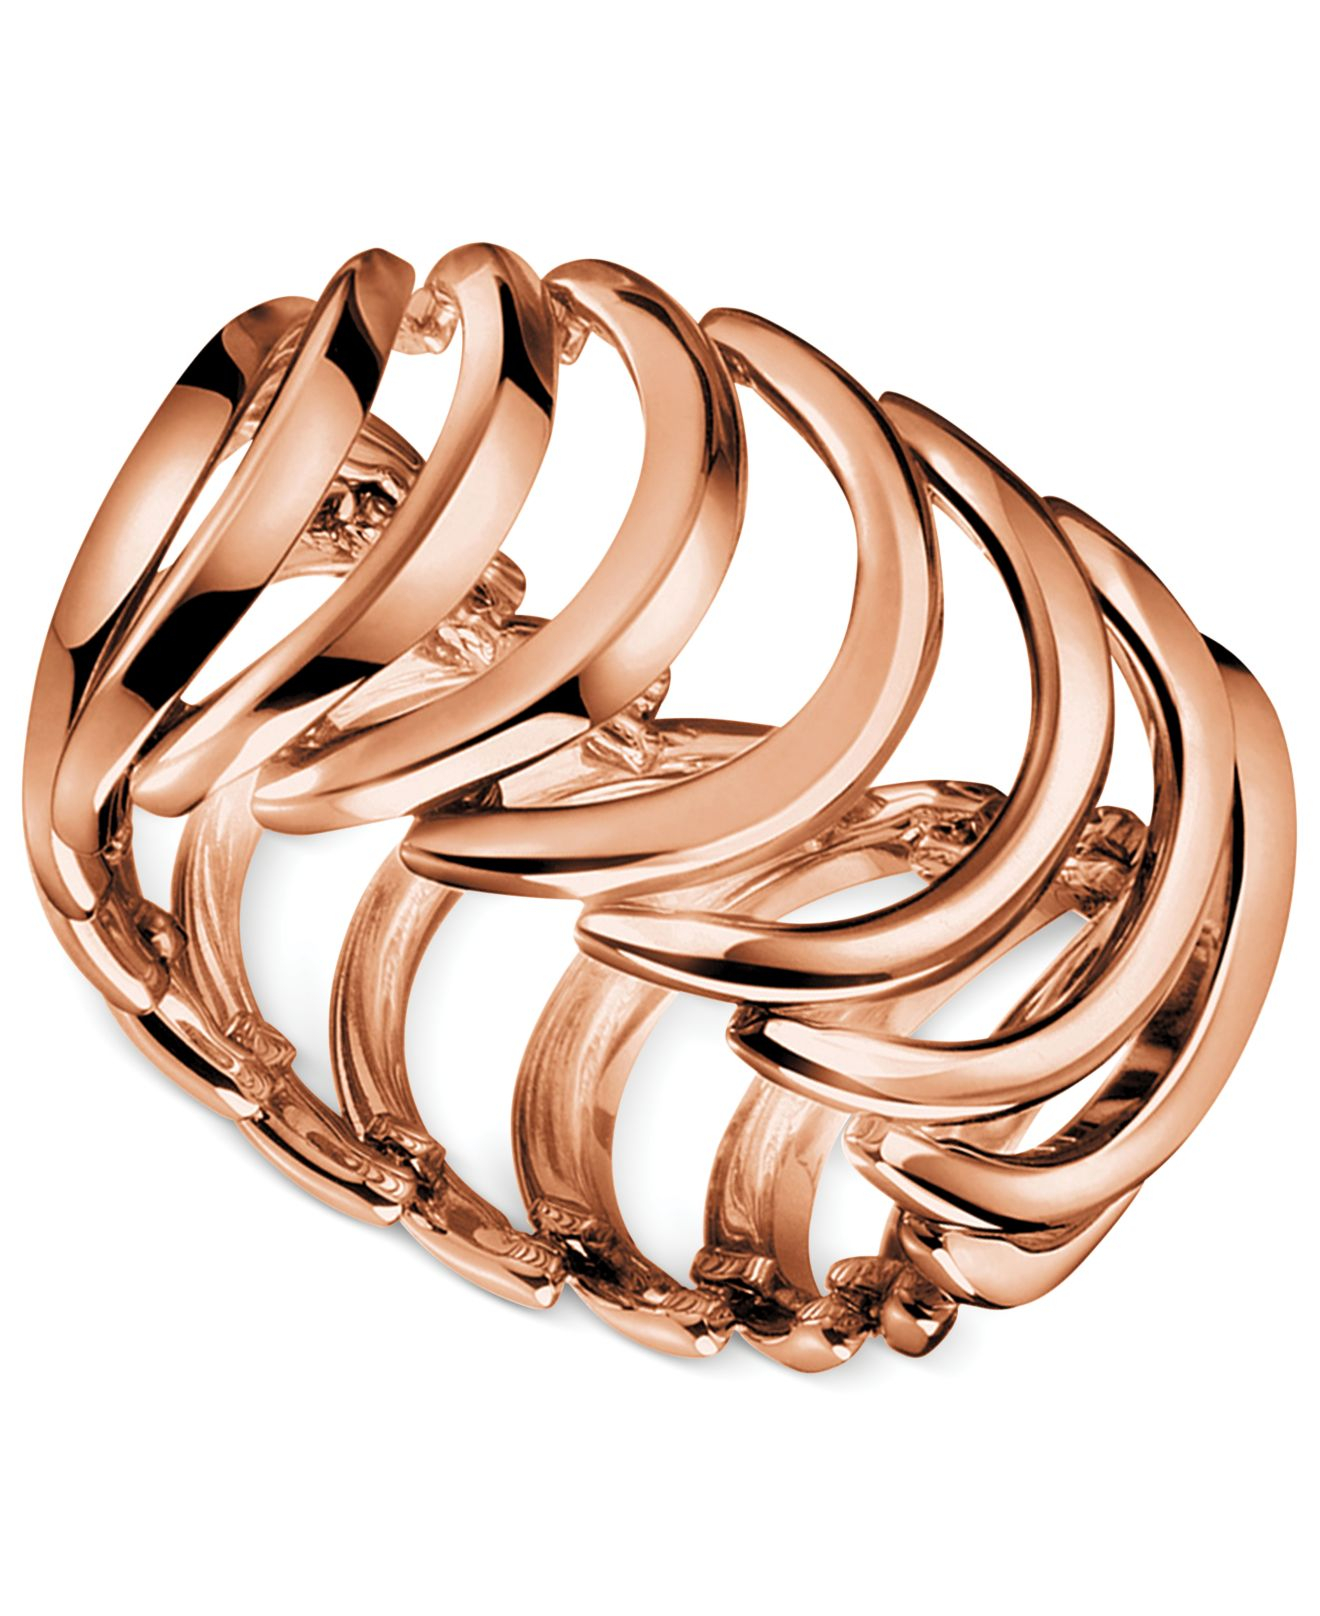 Calvin klein rose gold ring